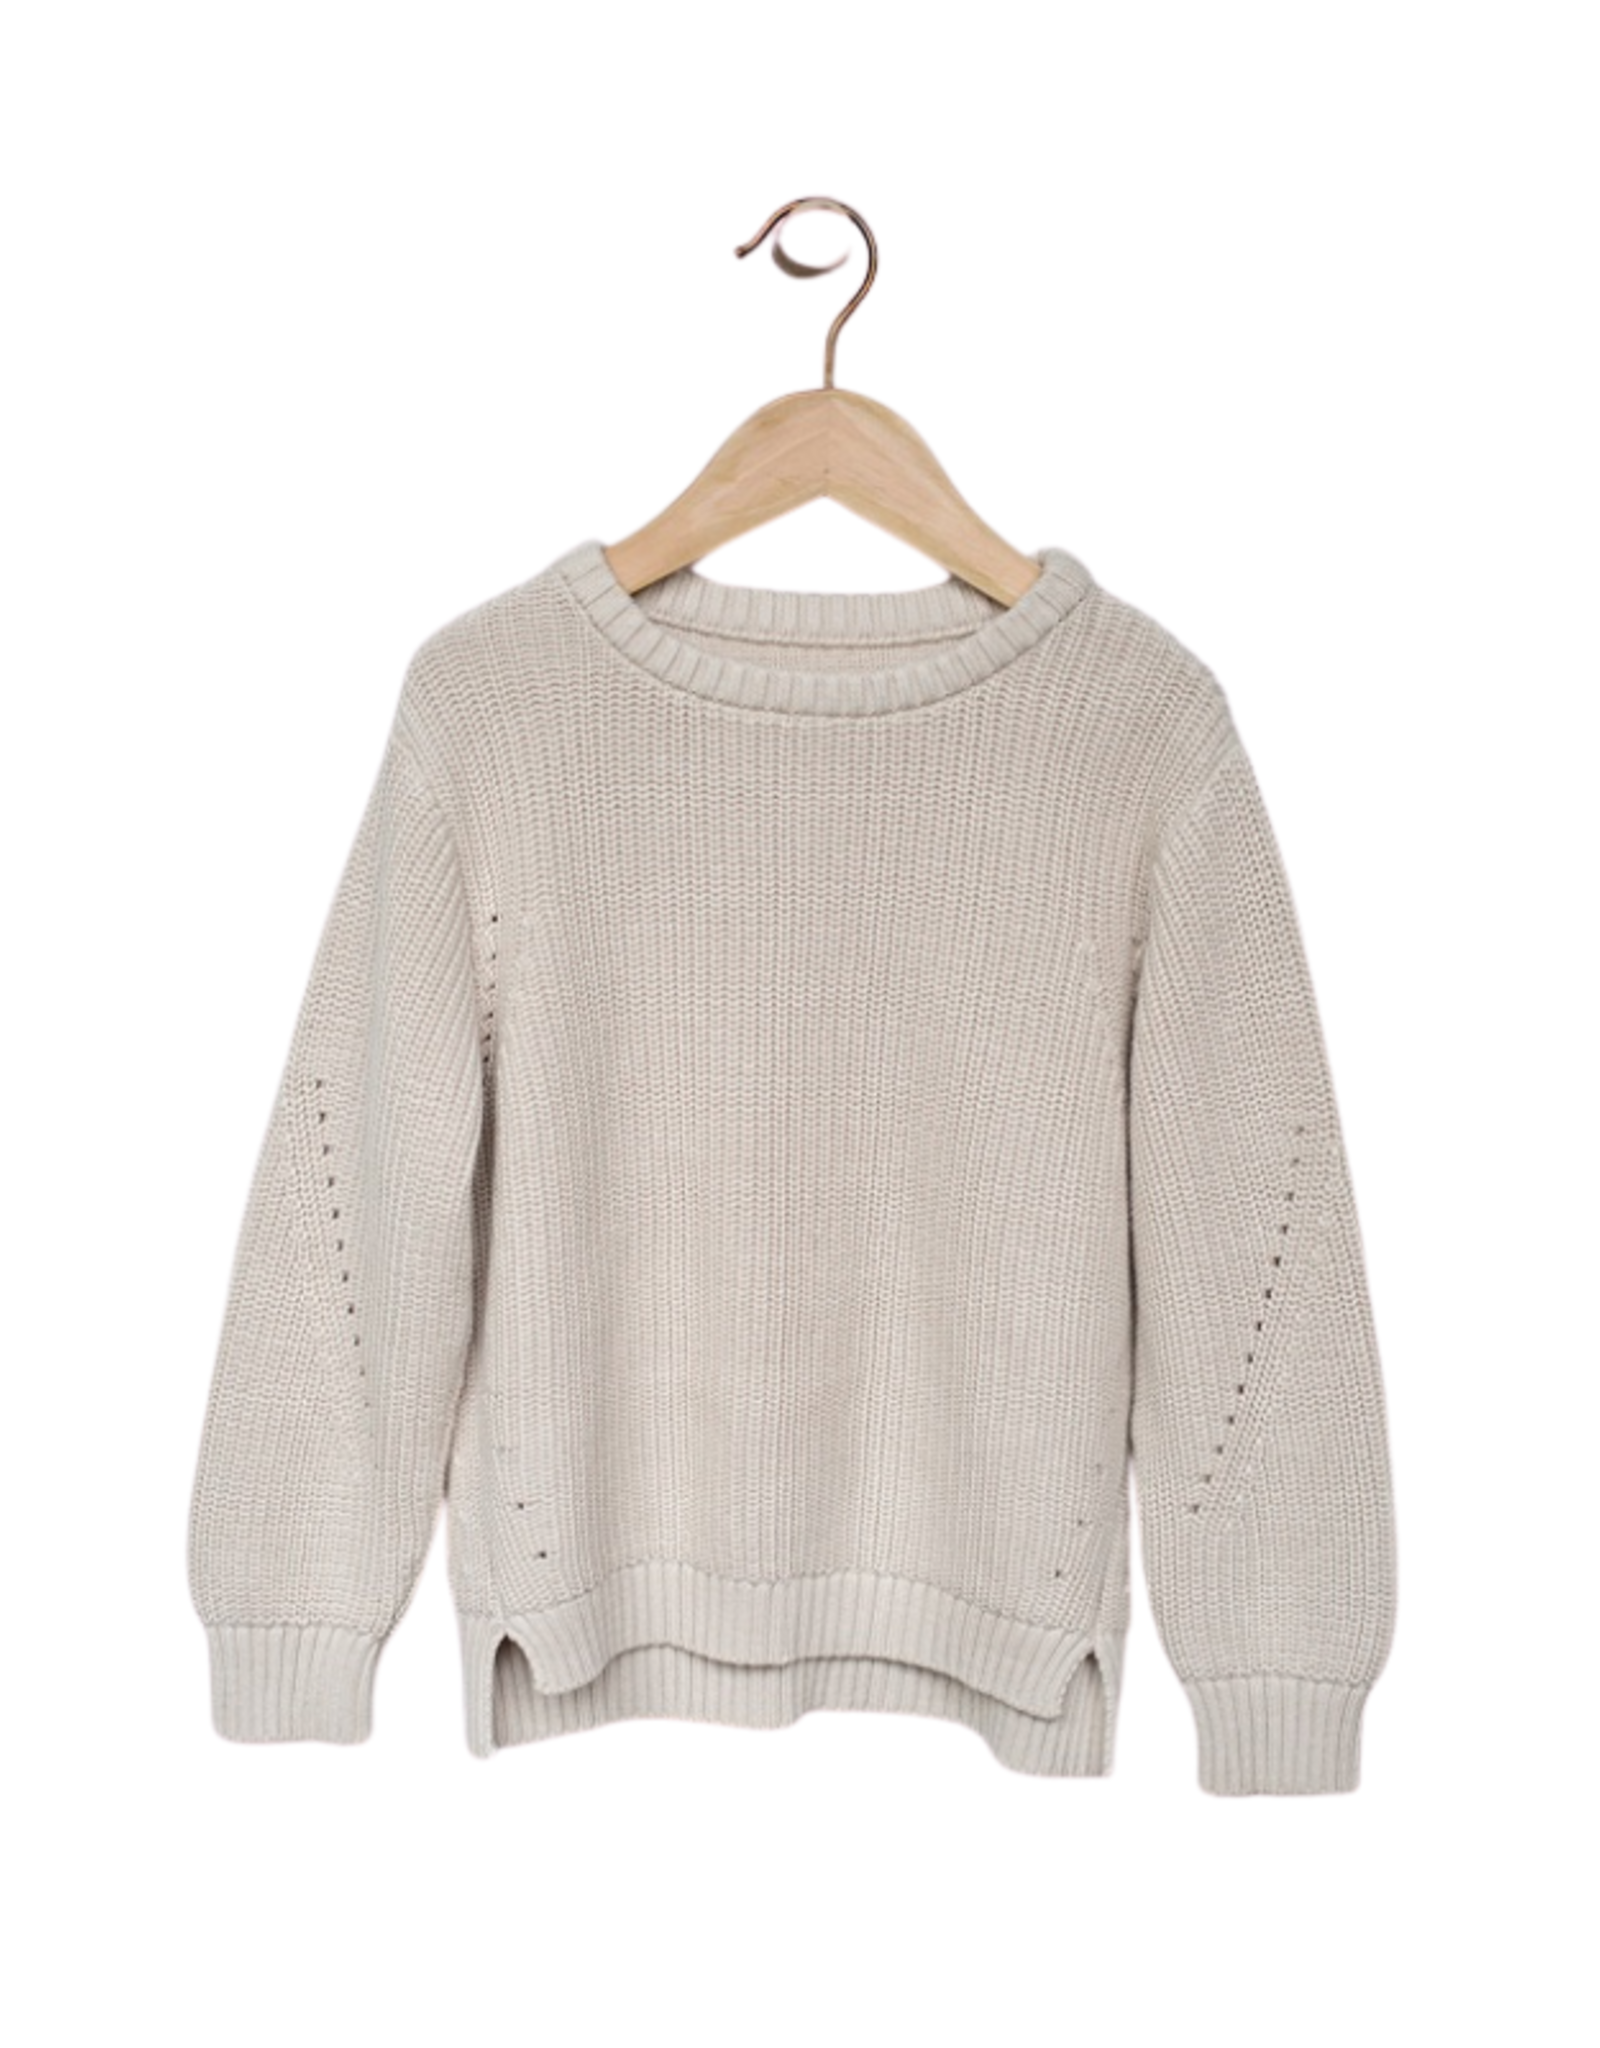 The Simple Folk The Essential Sweater - Oatmeal